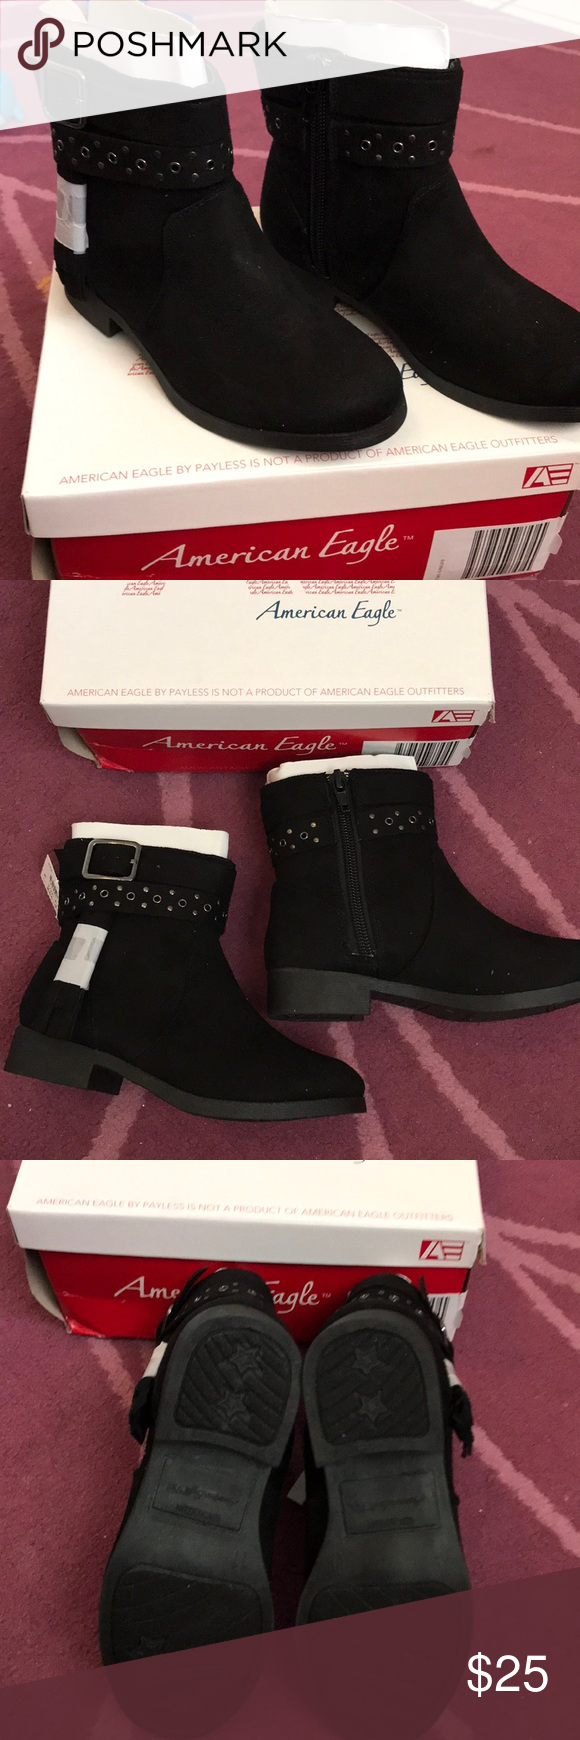 c72c8ee63a Girls Boots Brand new still in box girls zipper boots with a cute tassel on  the side American Eagle By Payless Shoes Boots